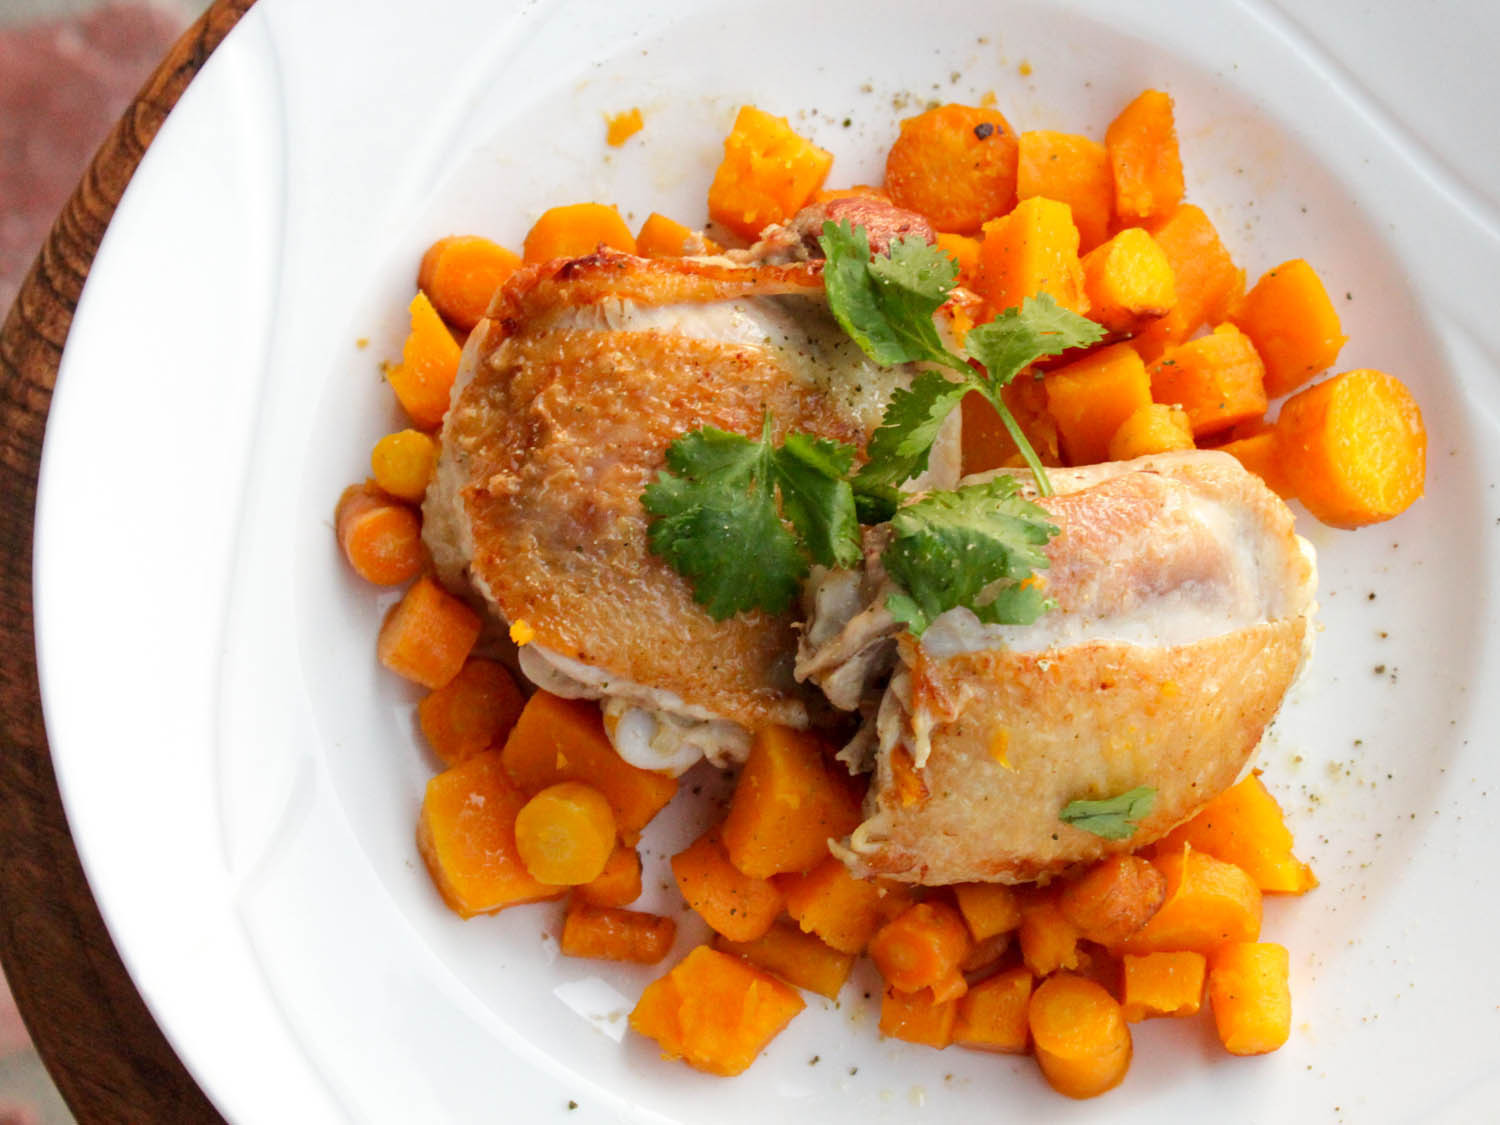 Quick Chicken Dinner  17 Chicken Dinners to Whip Up in 30 Minutes or Less